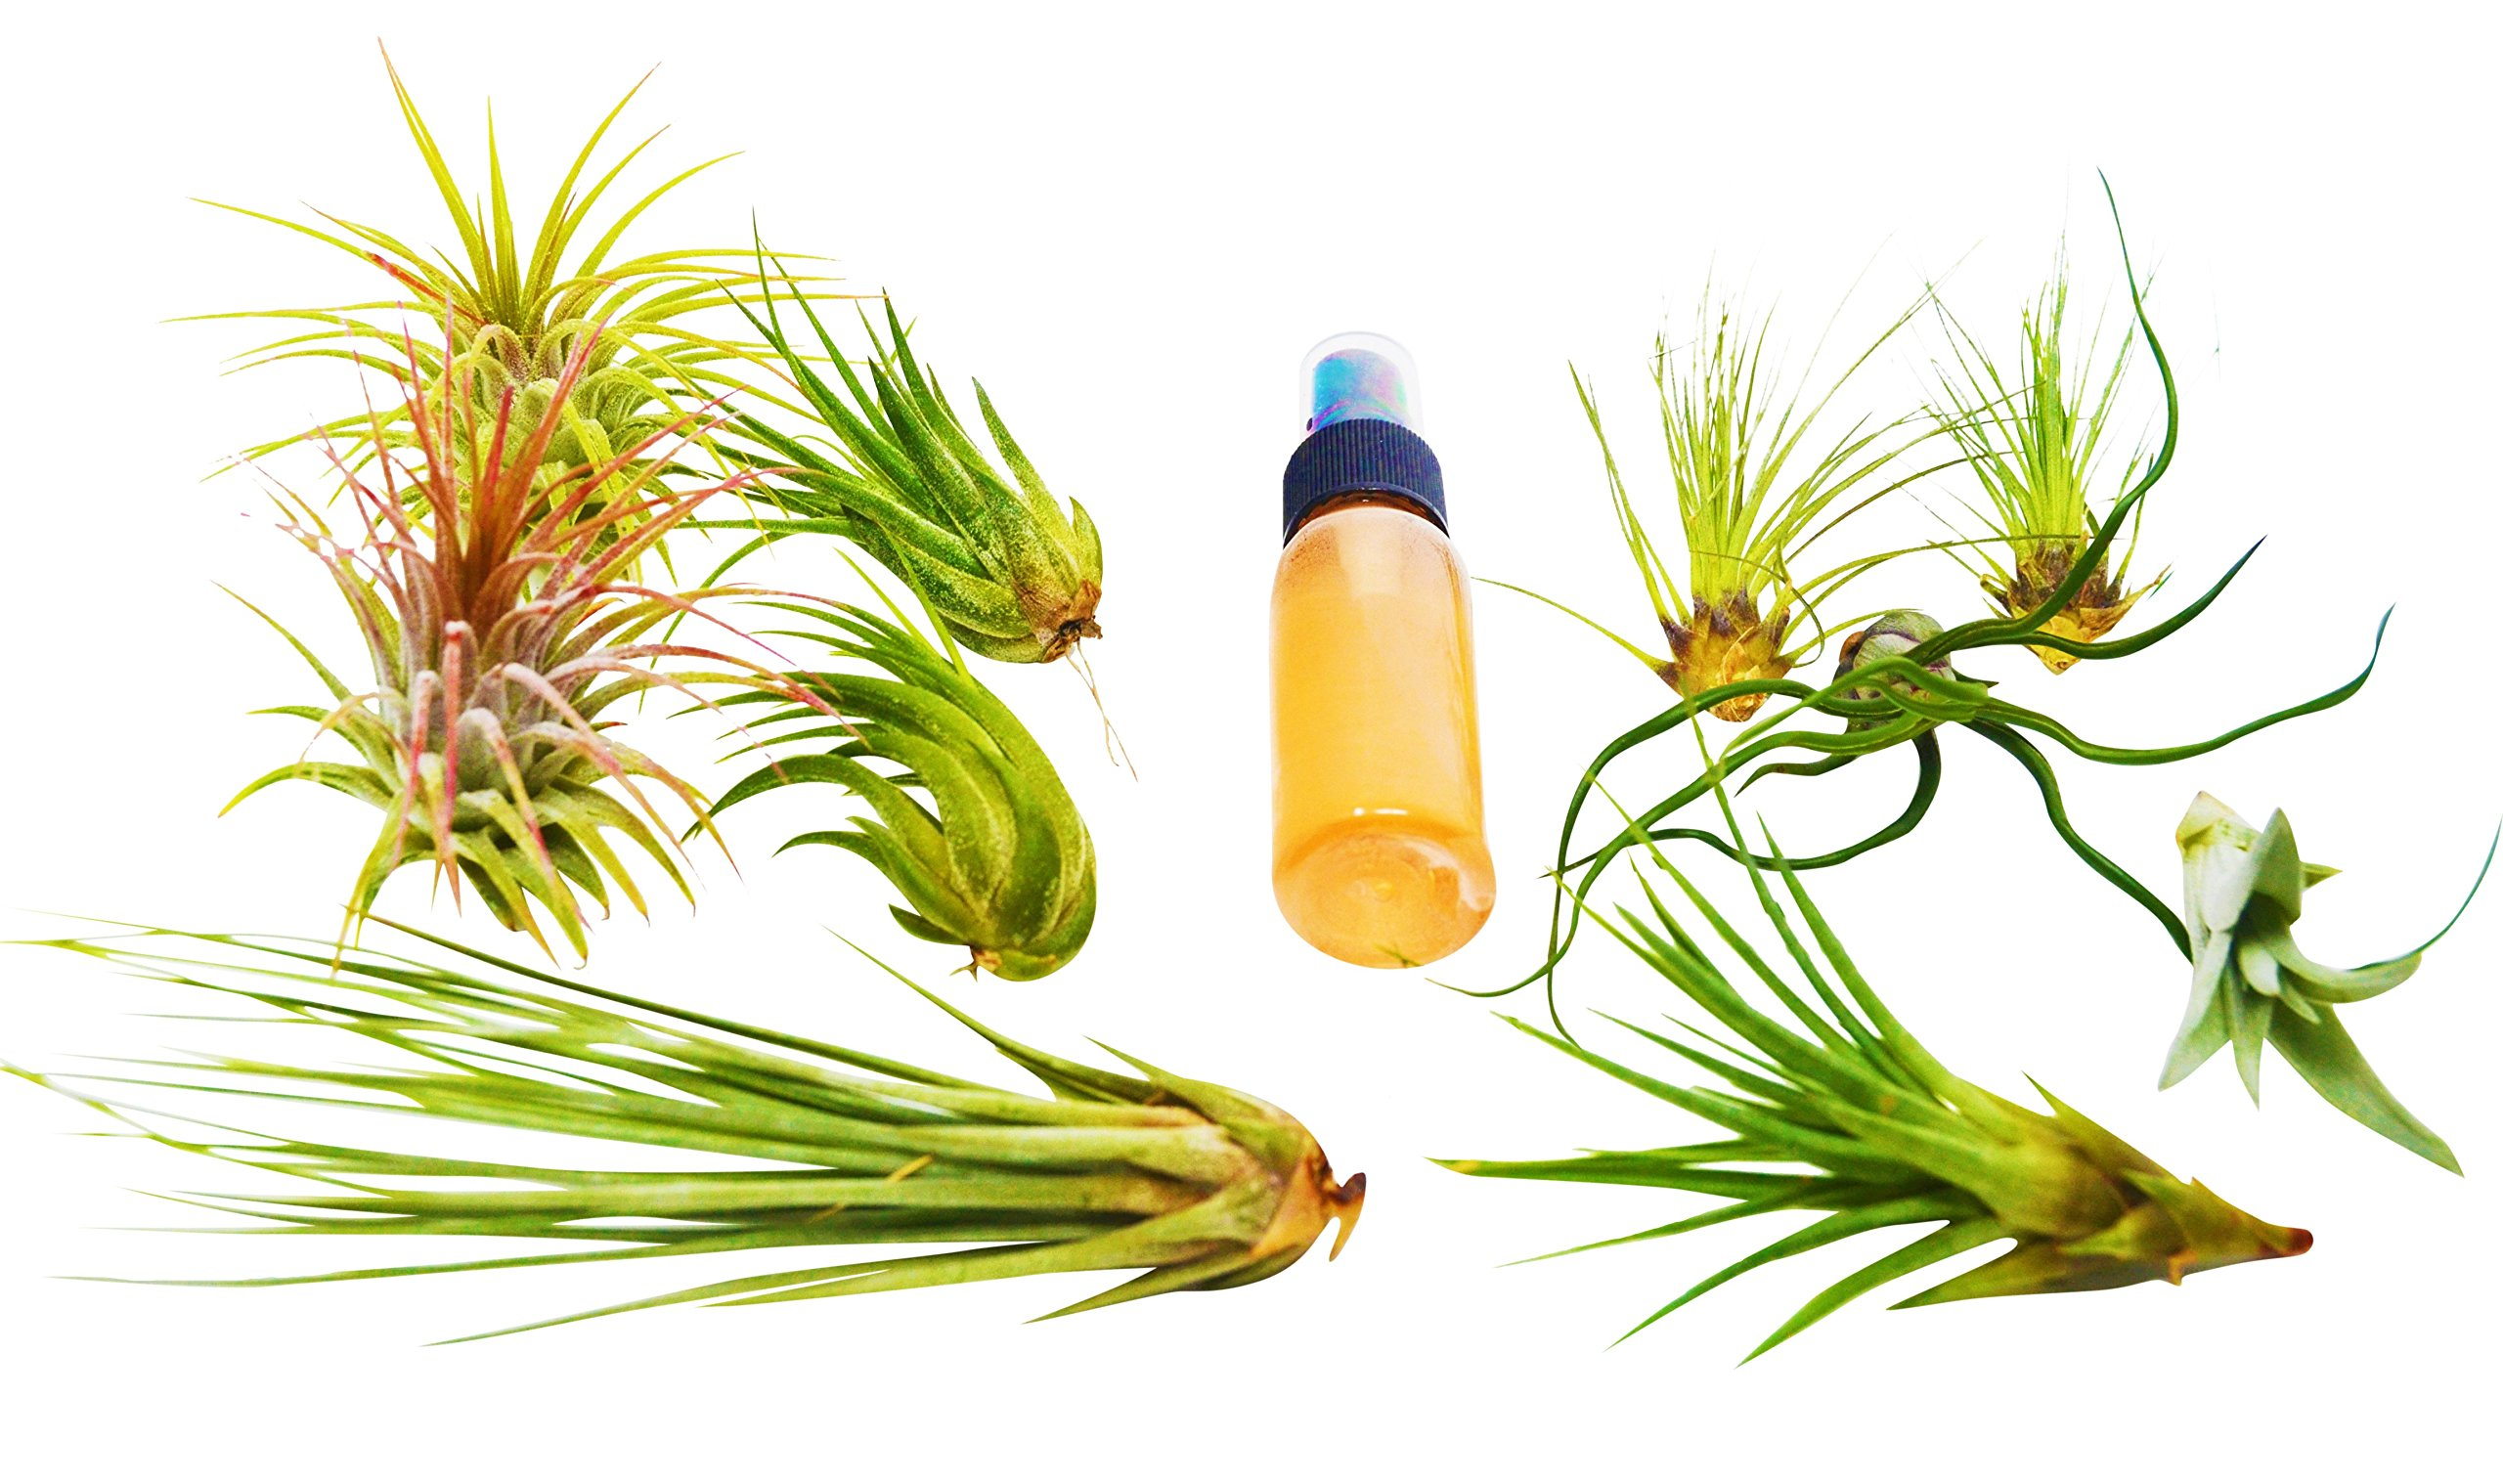 11 Pcs Tillandsia Air Plant Pack w/ Fertilizer Spray / Care Guide / Easy Care / Premium Plants